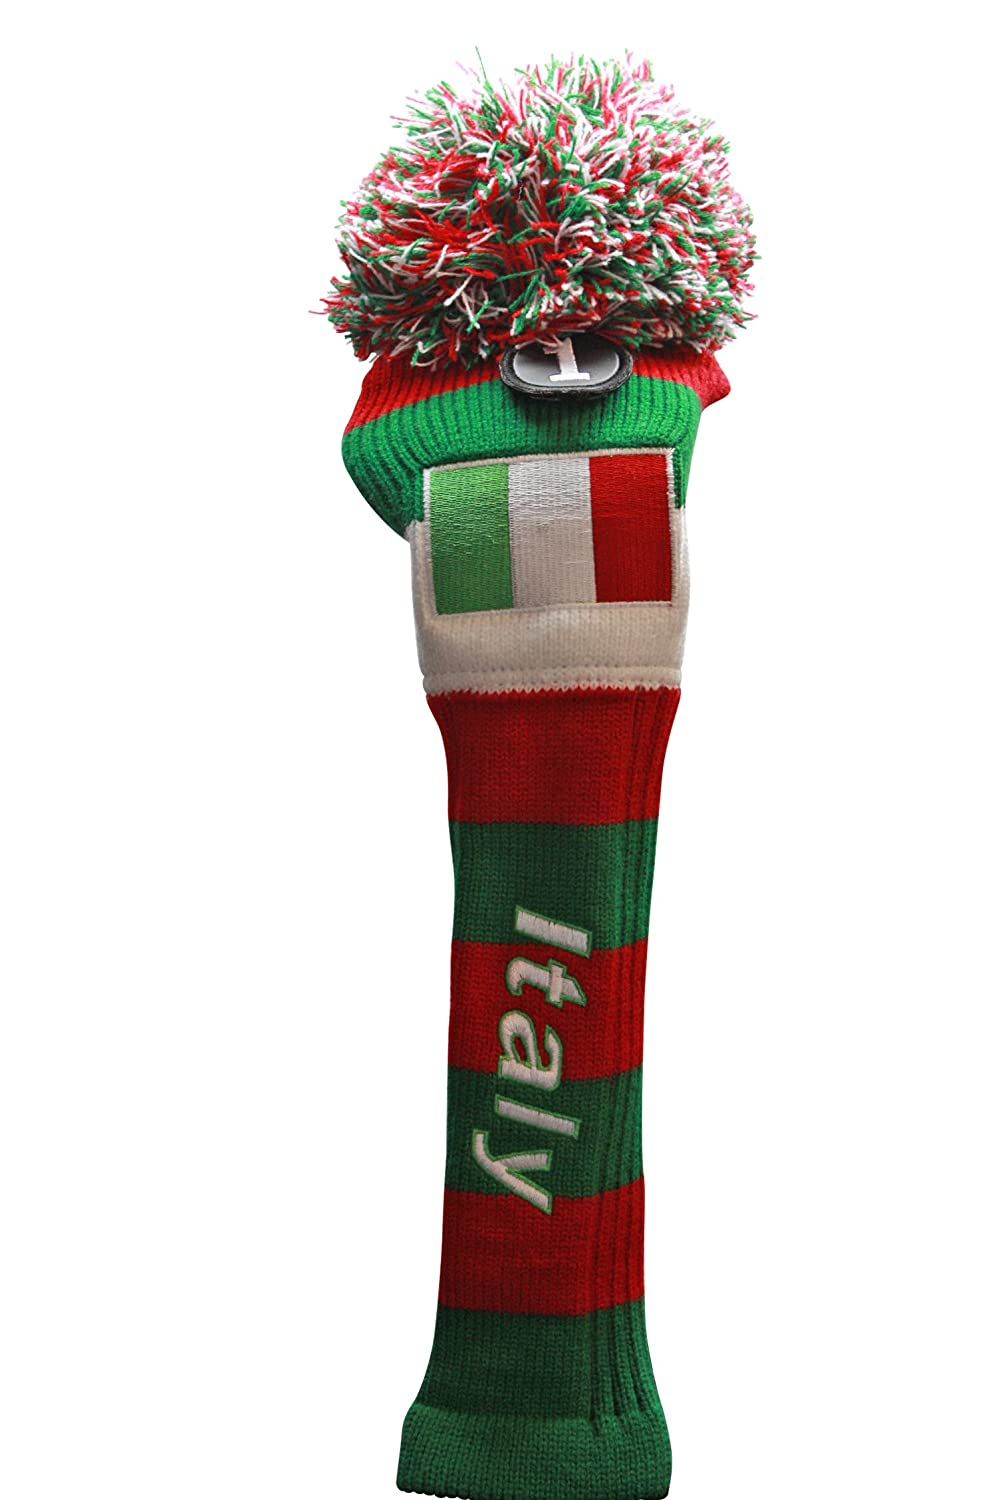 Amazon majek italy driver golf club head cover 1 italian amazon majek italy driver golf club head cover 1 italian drivers headcover red white green pom pom retro knit vintage classic throwback style head bankloansurffo Gallery